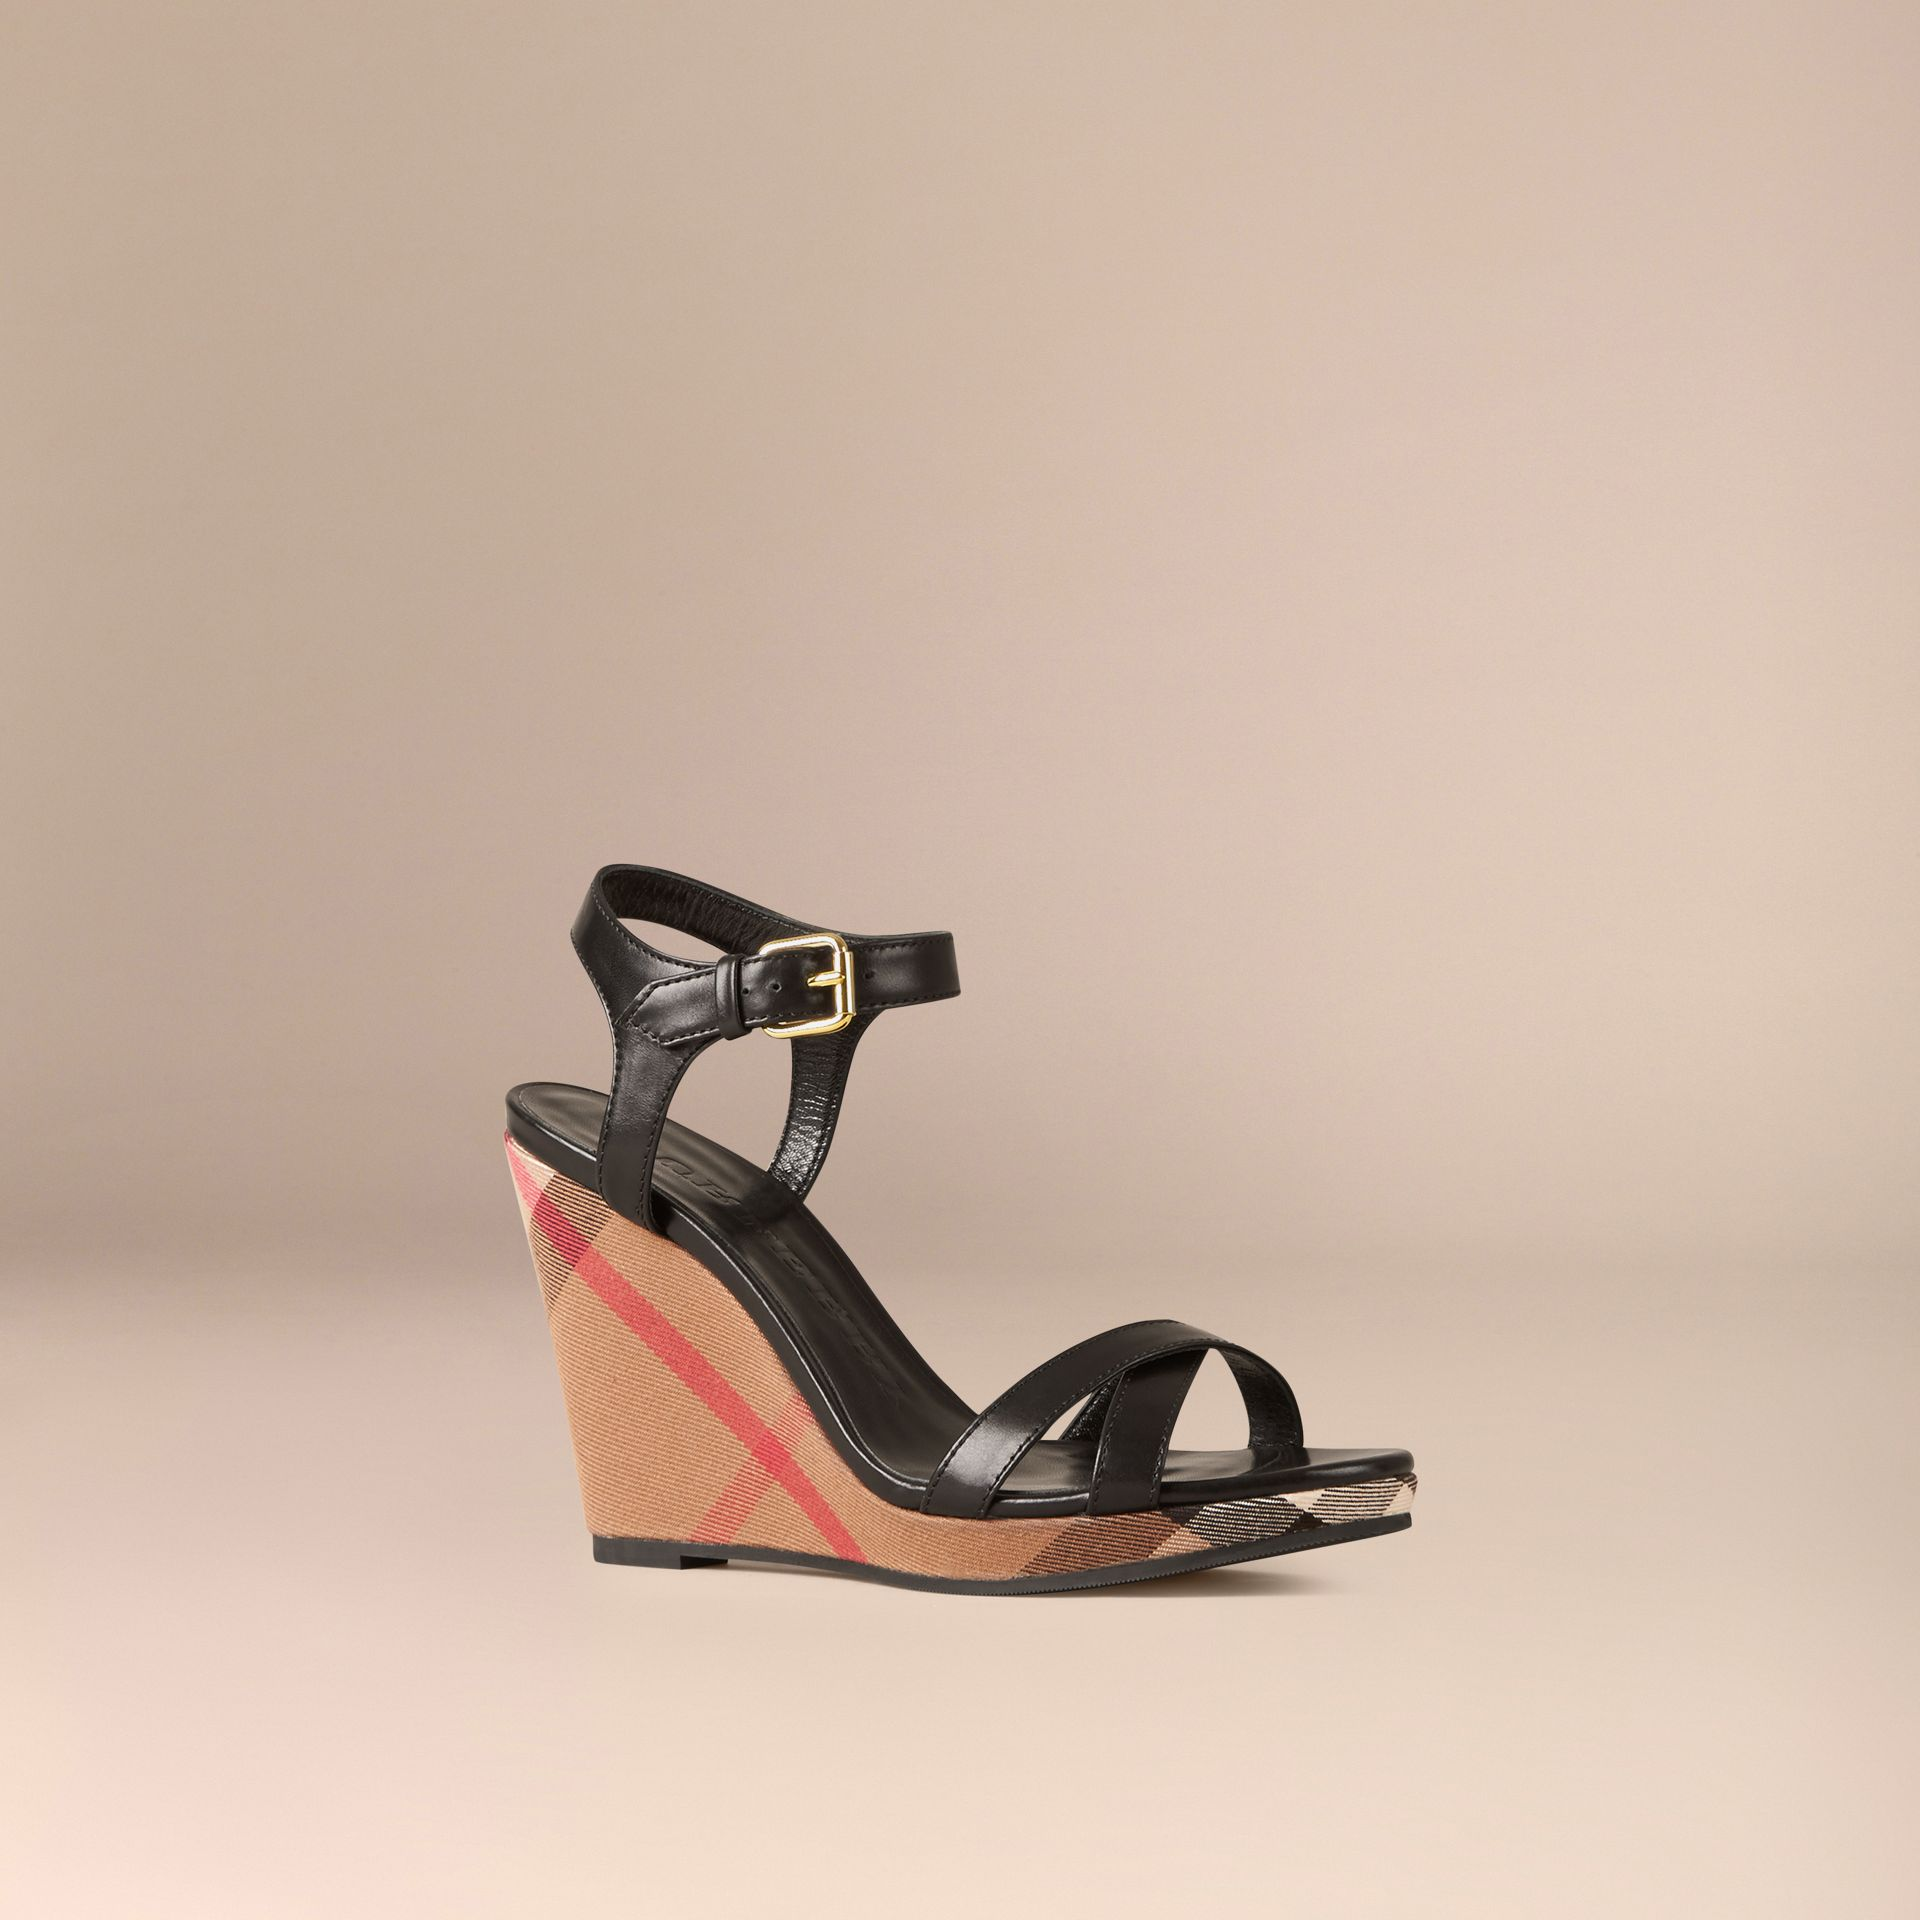 House Check and Leather Wedge Sandals in Black - Women | Burberry - gallery image 1